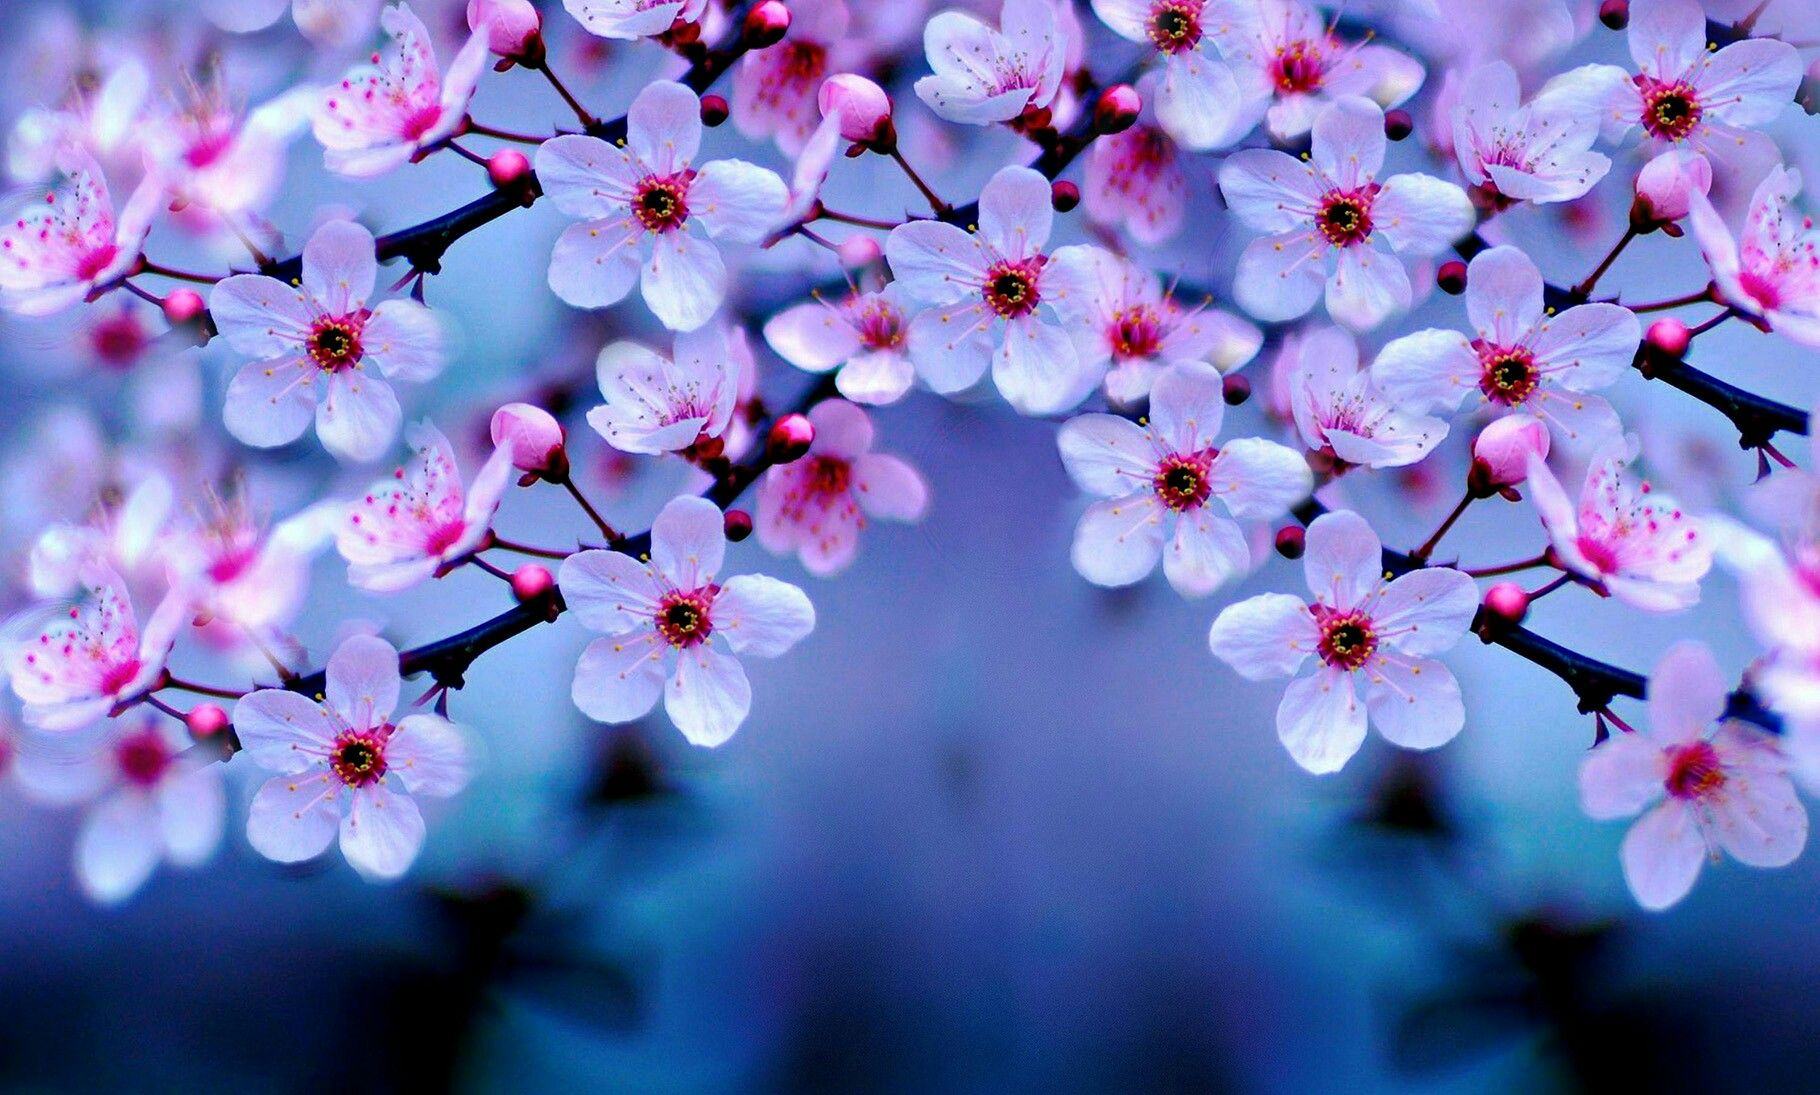 sakura flower wallpaper images all free download chigiri e once and future pinterest cherry blossoms cherries and blossoms